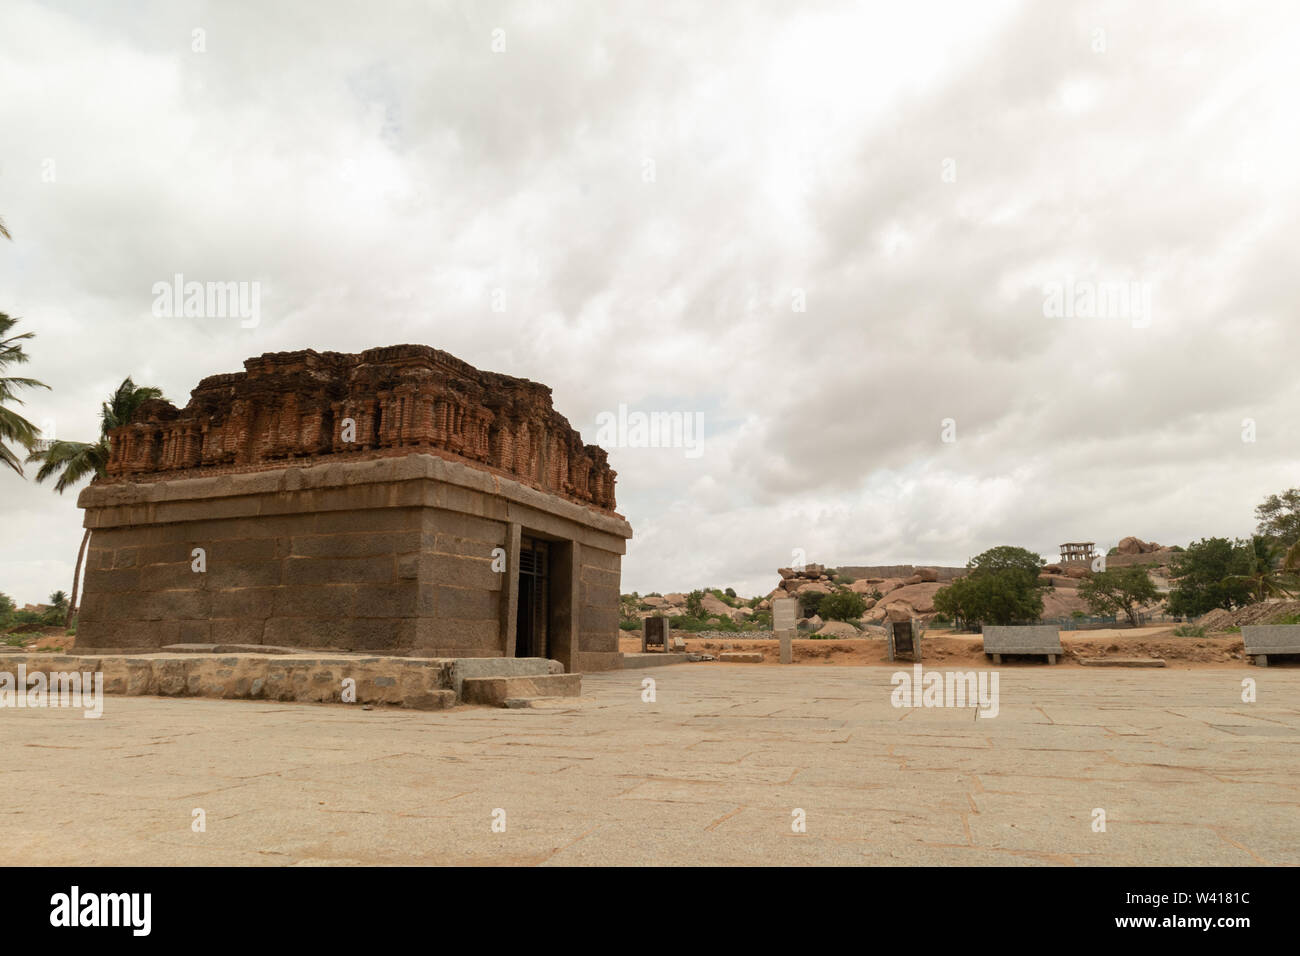 Badavi linga temple in Hampi city, Karnataka,India - Stock Image